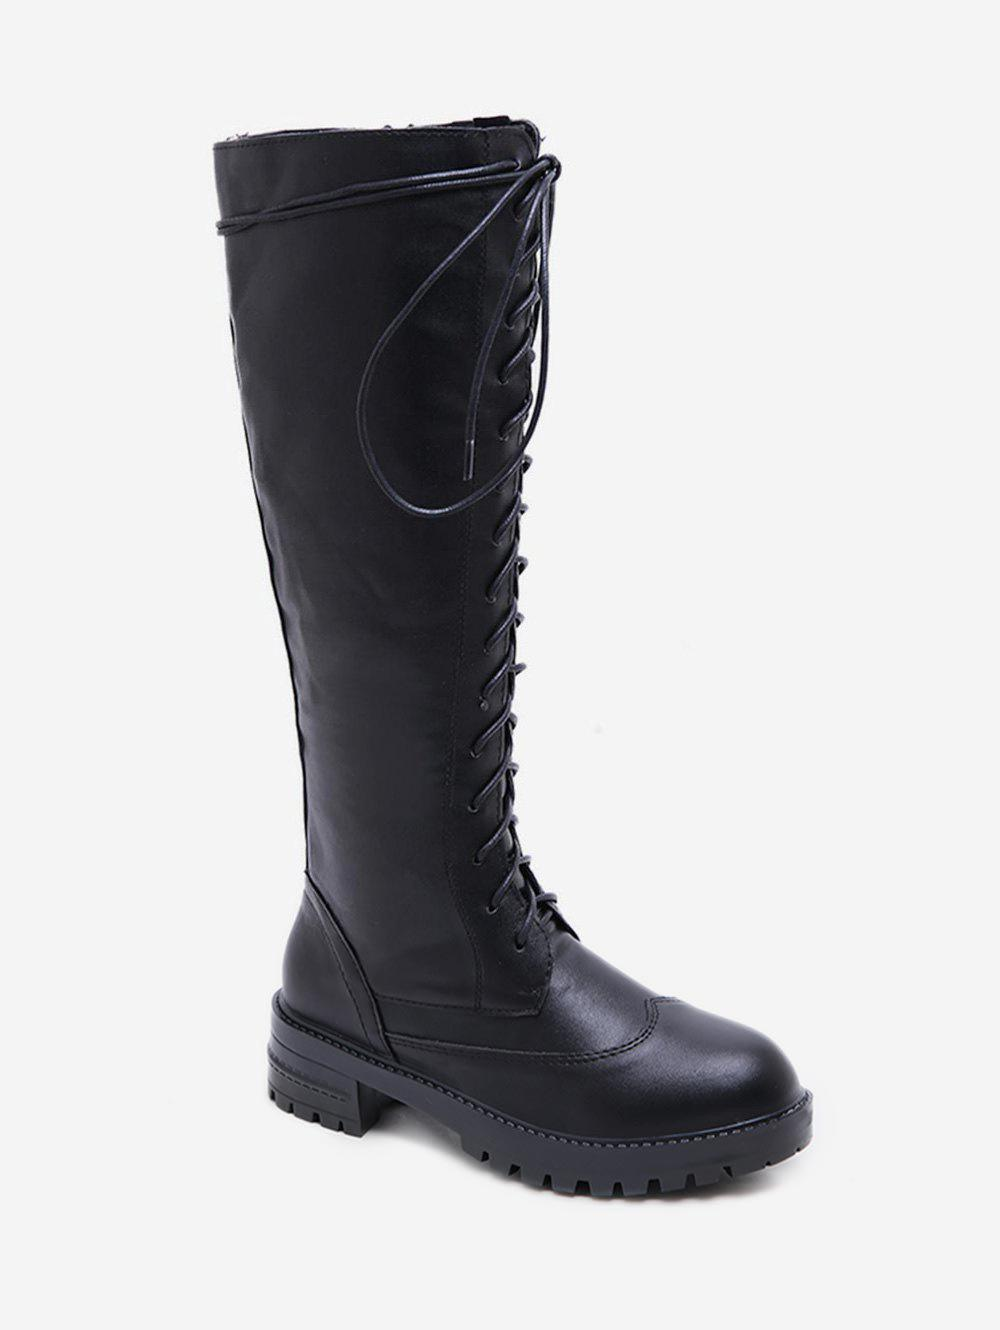 PU Leather Platform Knee High Boots - BLACK EU 36